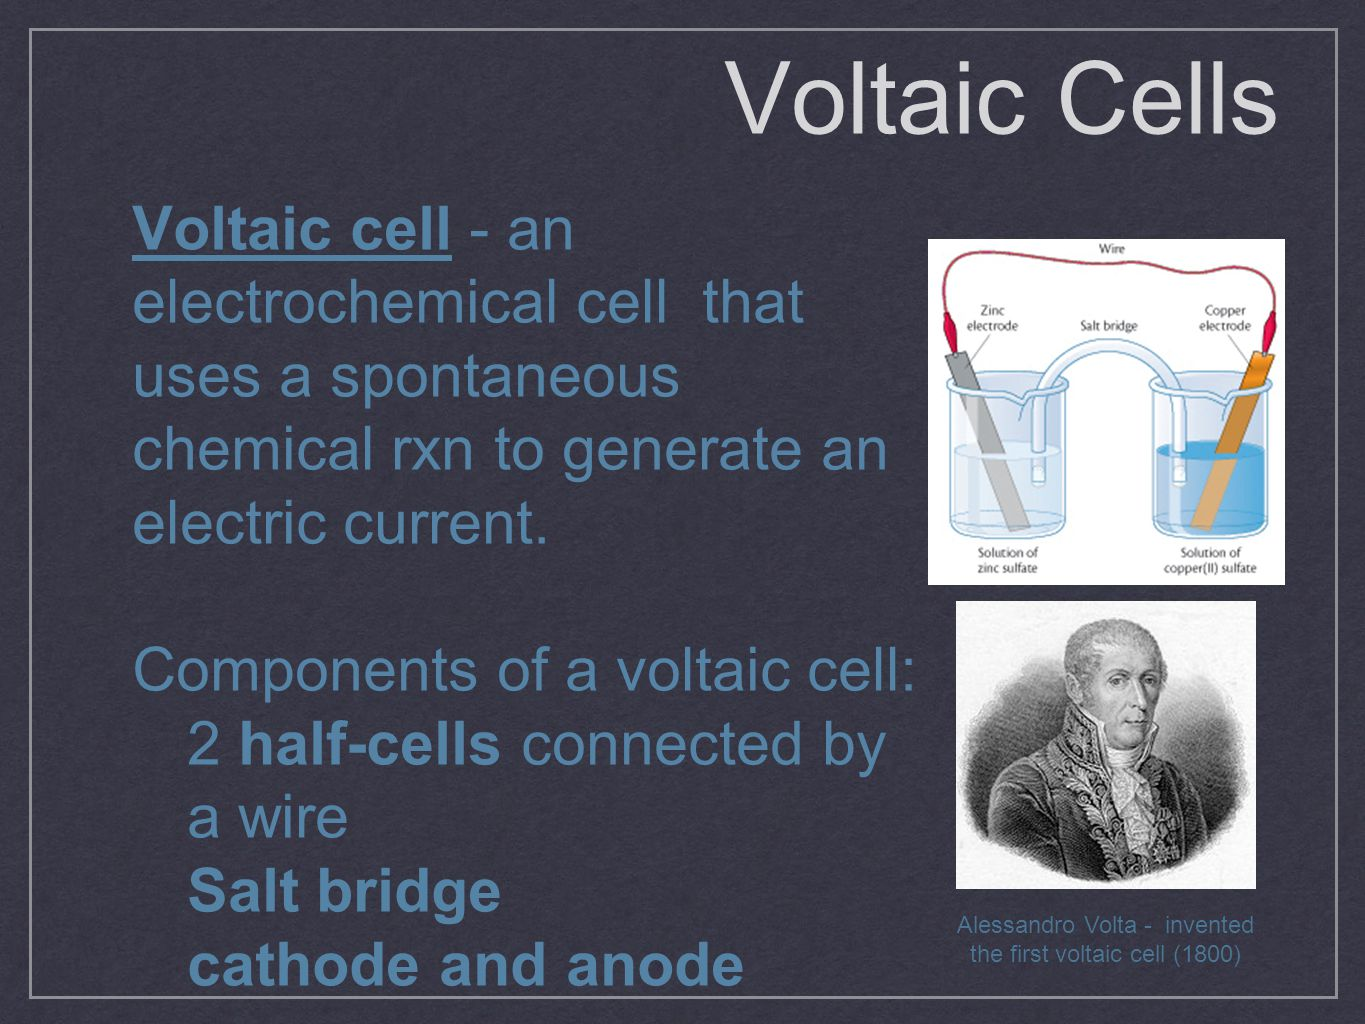 Voltaic Cells Voltaic cell - an electrochemical cell that uses a spontaneous chemical rxn to generate an electric current. Components of a voltaic cel